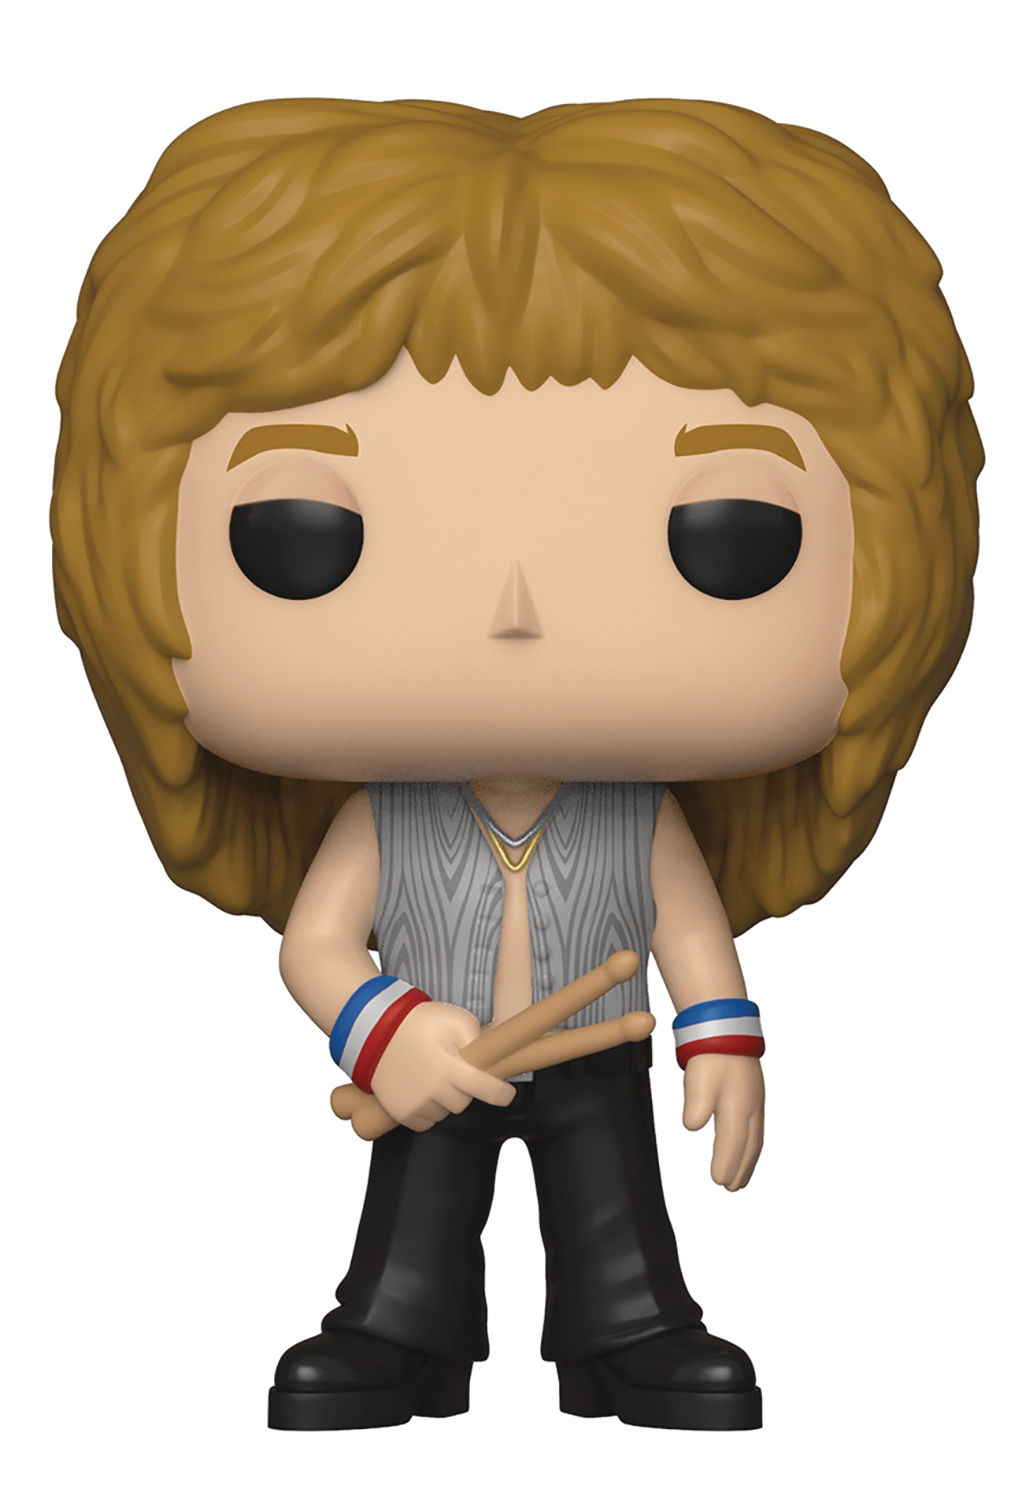 POP ROCKS QUEEN ROGER TAYLOR VINYL FIGURE